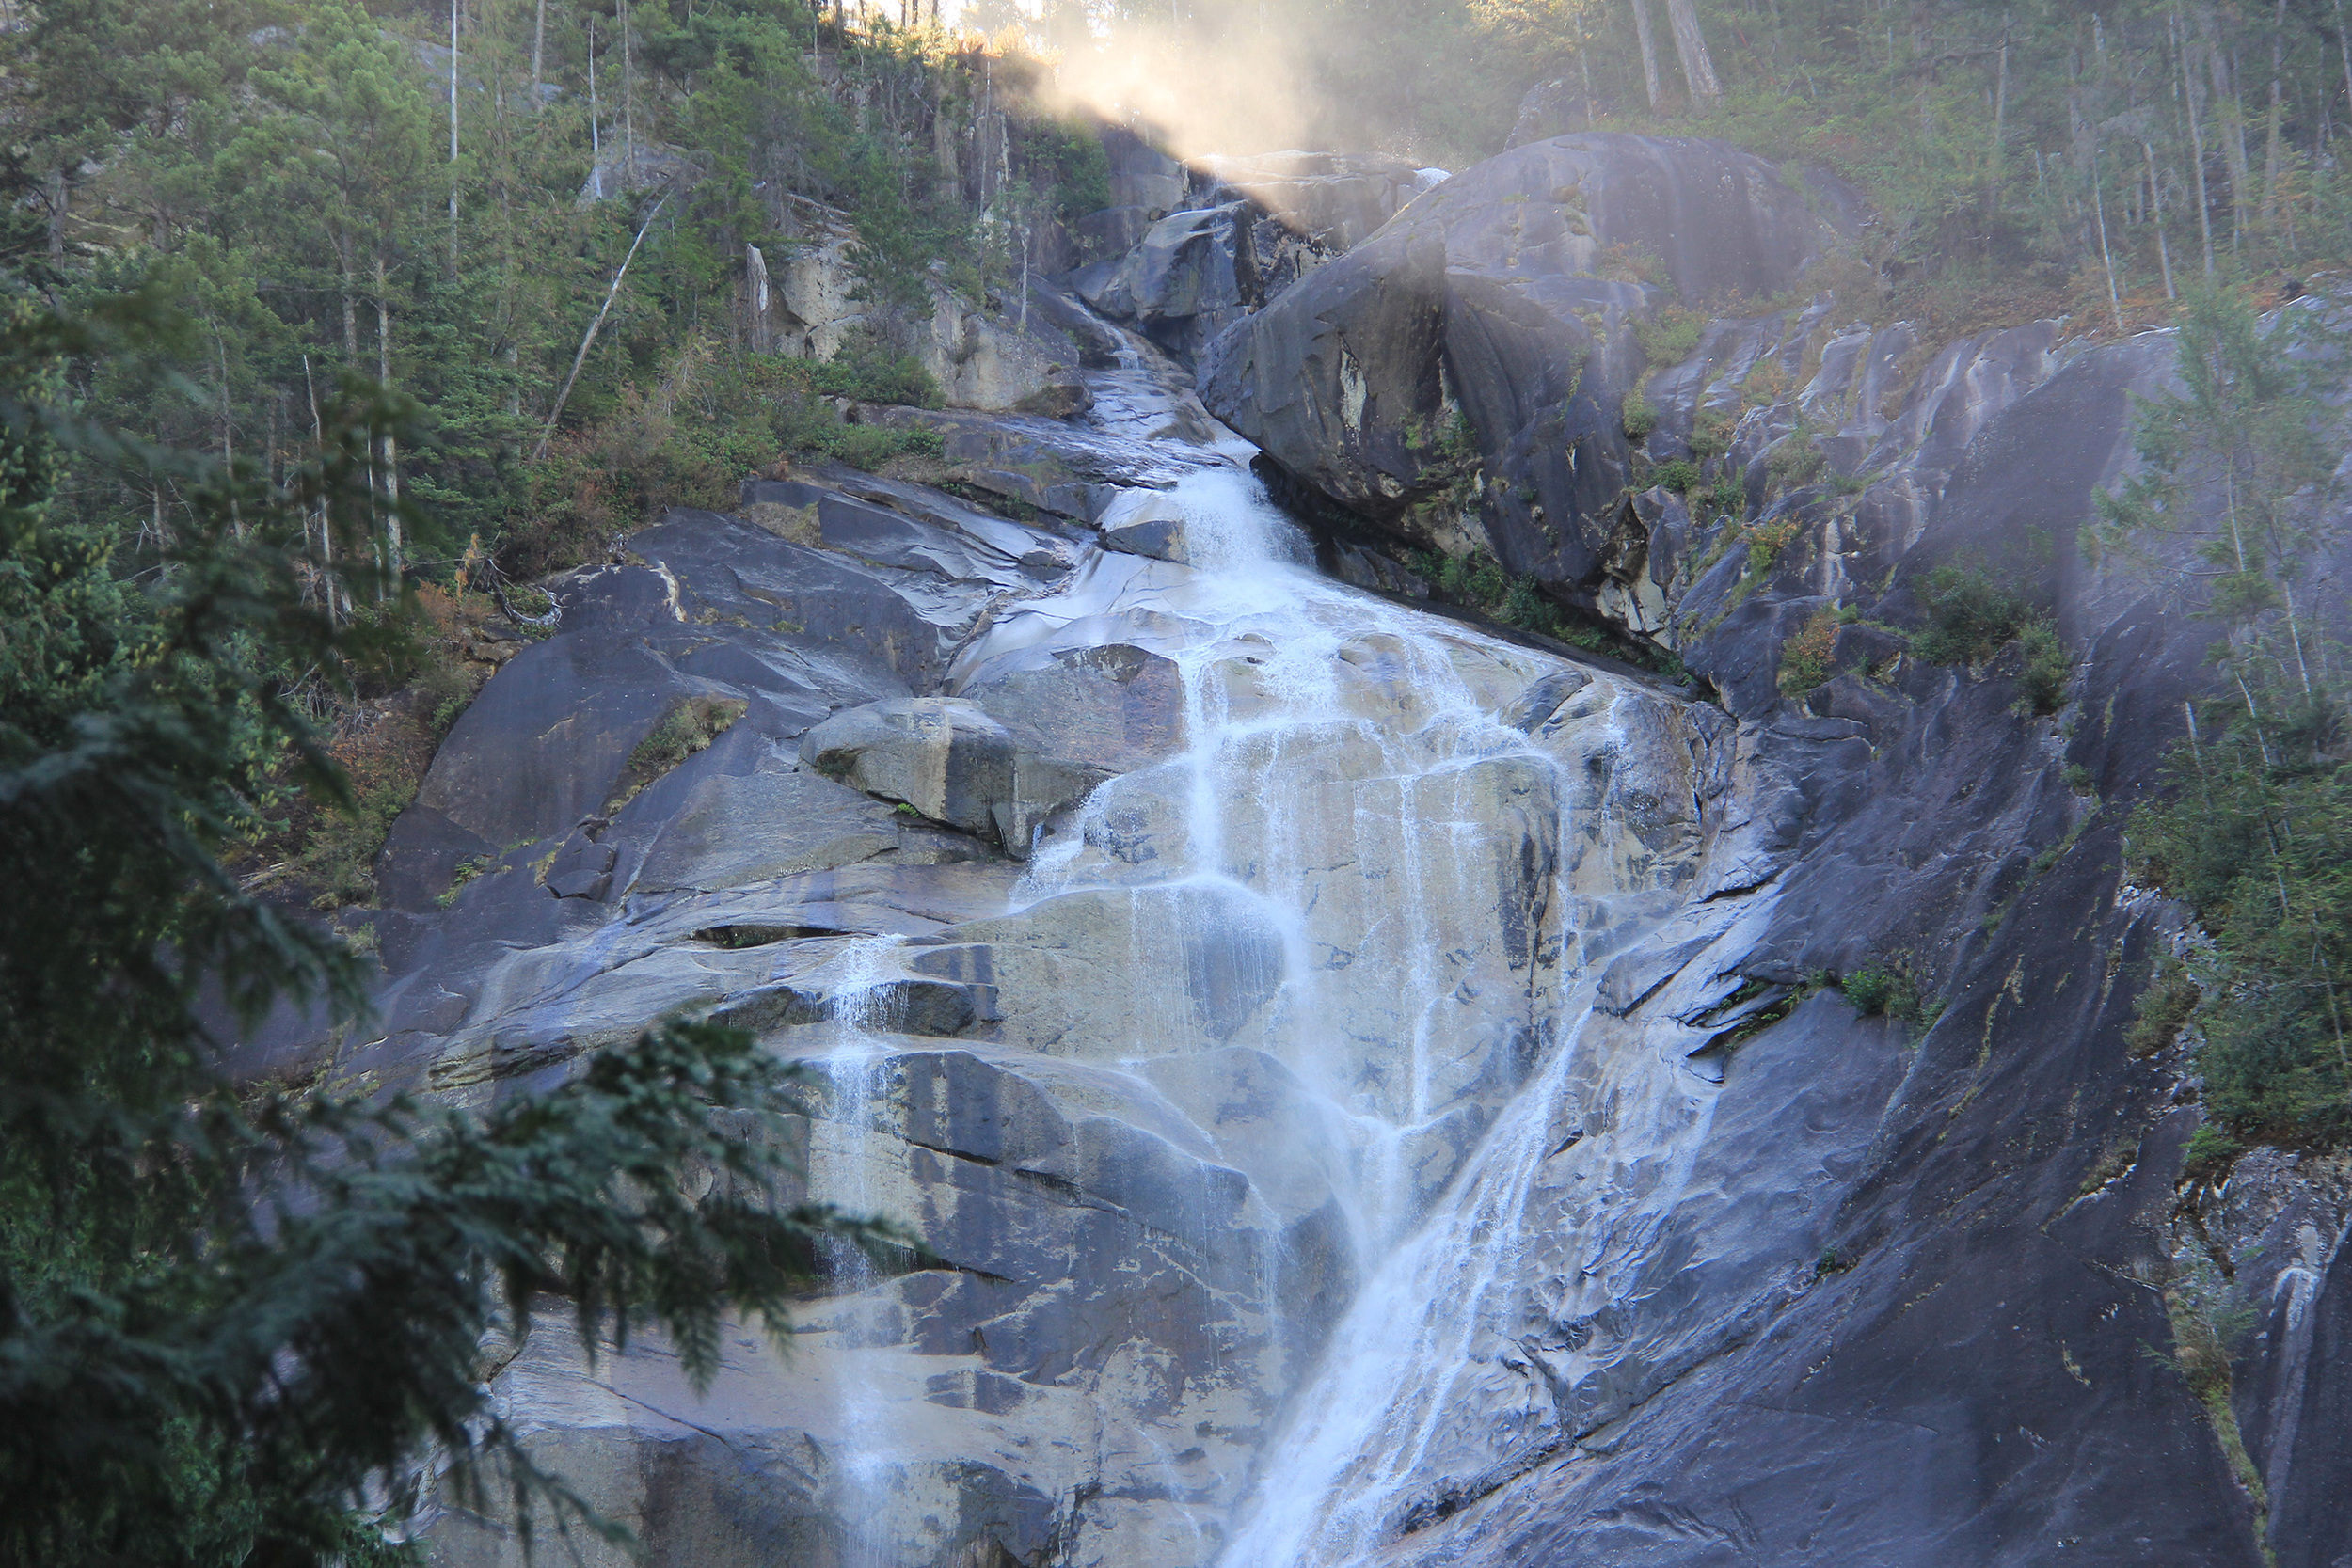 Shannon Falls, Squamish (spelt Skwxwu7mesh in the native language - the 7 represents a guttural sound)